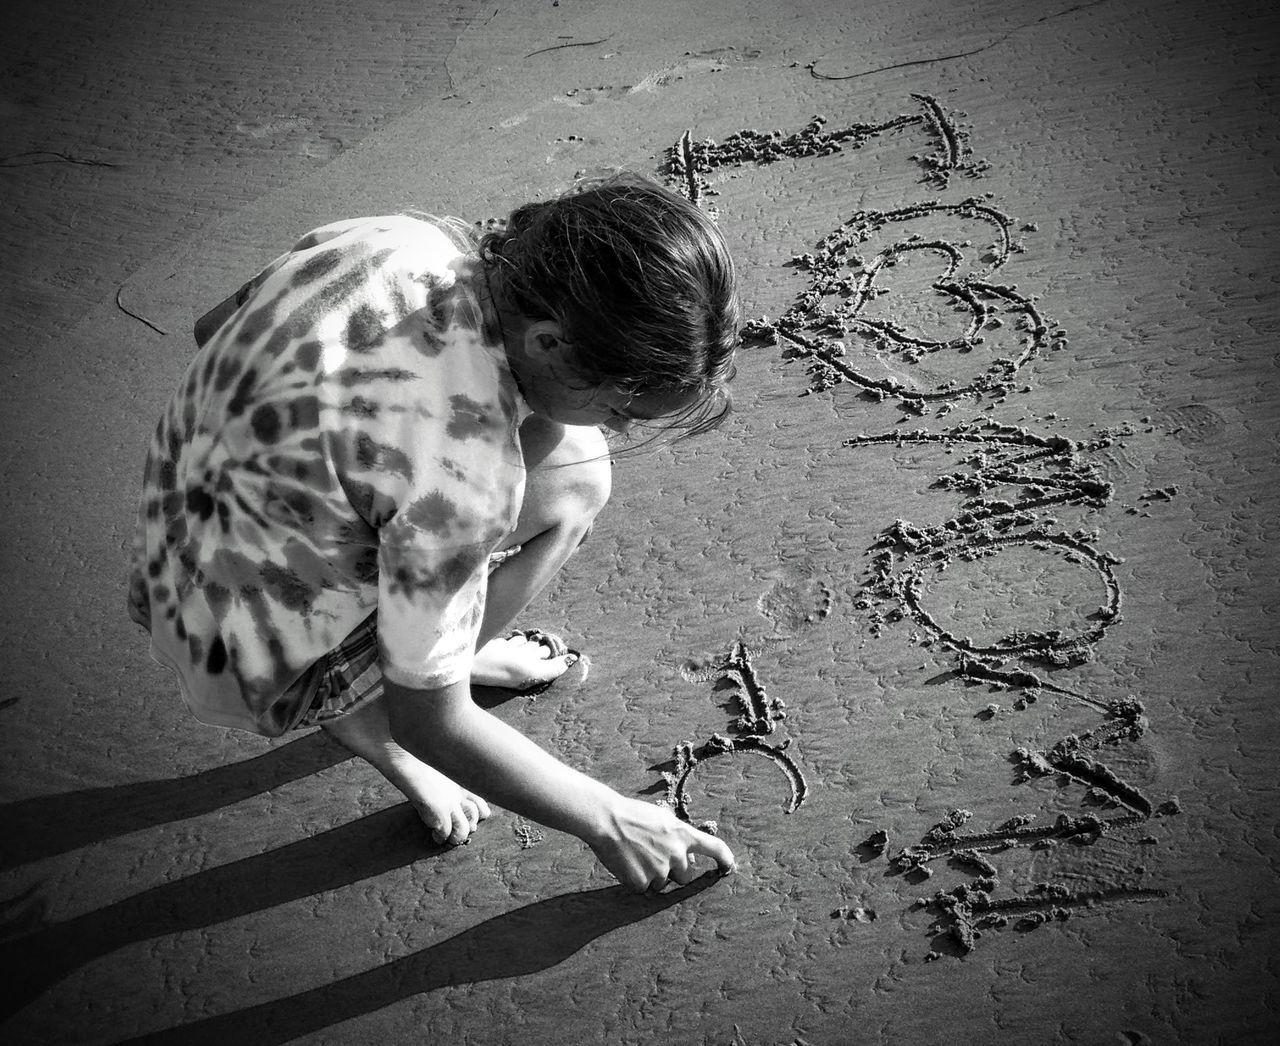 A message to mom Black And White On The Beach Child Writing In Sand Girl On Beach I Love Mom Message To Mom On The Beac Message To The World Sweet Message To Mom Writing From The Heart Writing On The Beach